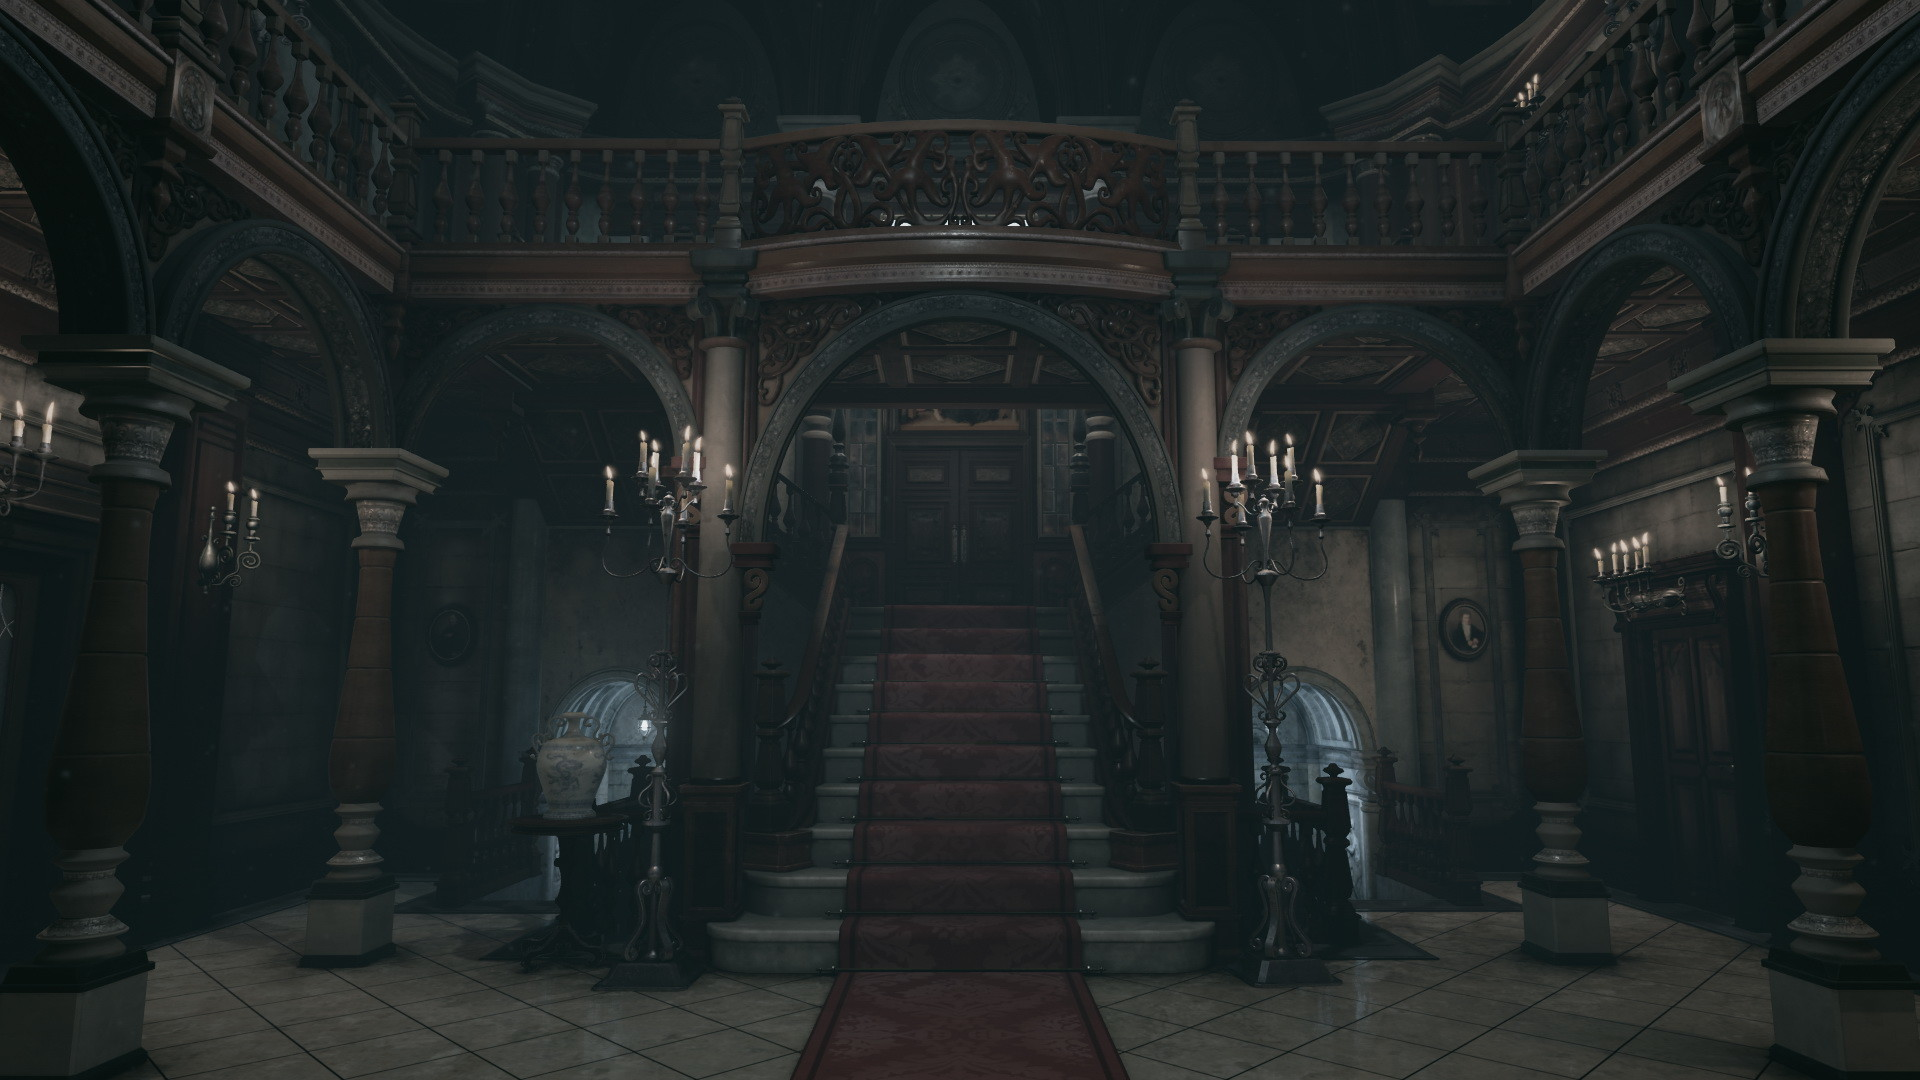 Resident Evil's mansion hall looks great in Unreal Engine 4